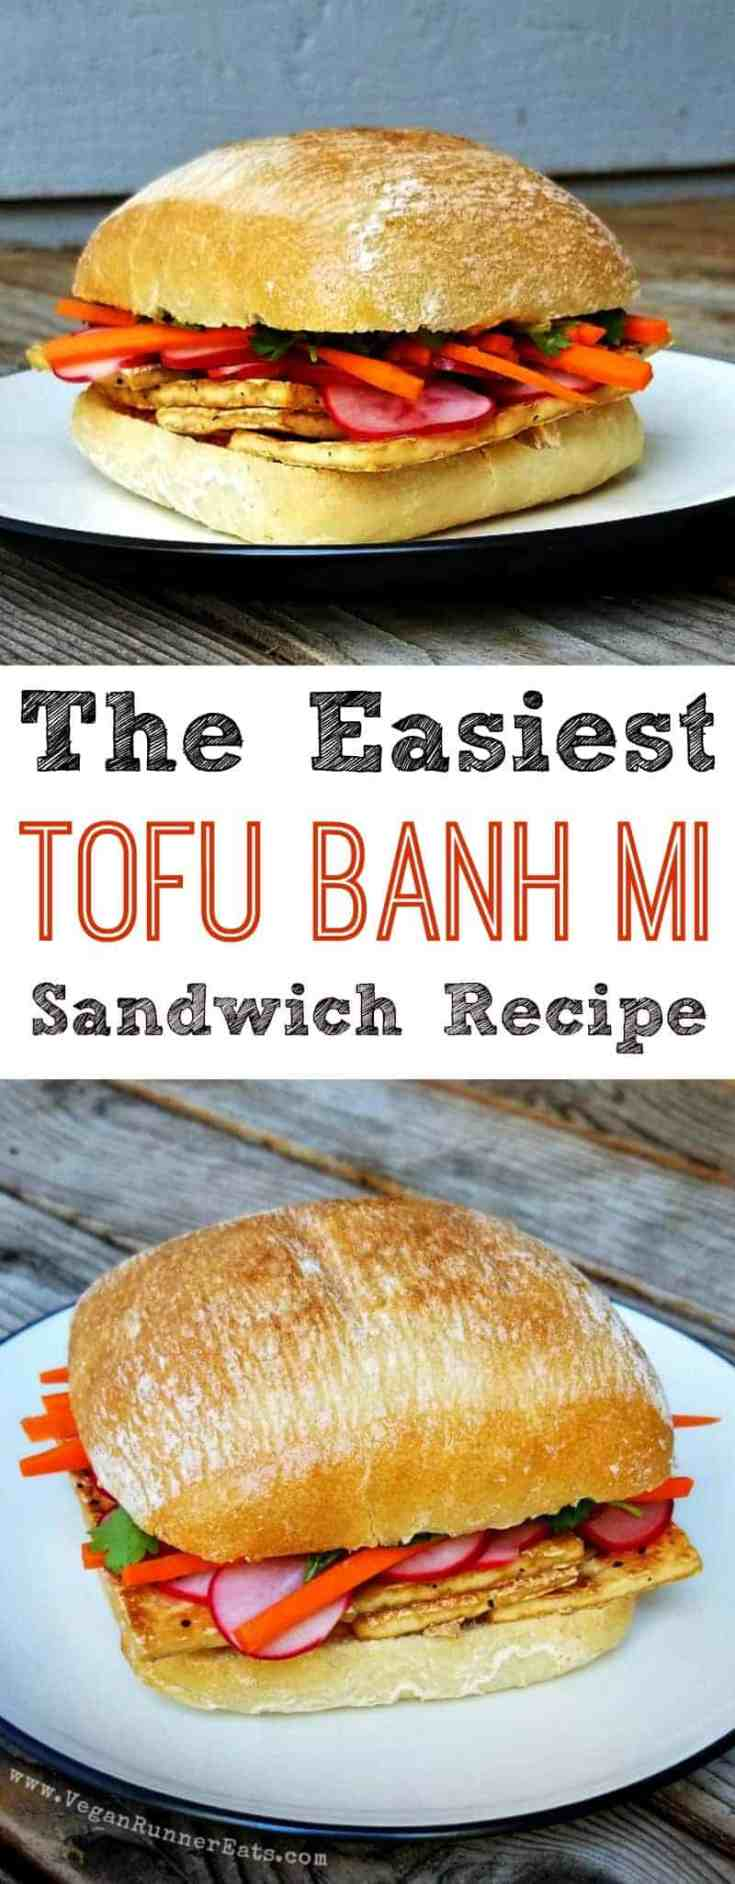 Easy vegan tofu banh mi sandwich recipe that comes together in 30 minutes, including the time for marinating veggies! Tofu slices are seared in a pan, then layered with pickled radishes, carrots and cilantro, then finished with an spicy Sambal-based spread. | tofu banh mi recipe | vegan banh mi recipe | vegan banh mi sandwich | vegan sandwiches | vegan sandwich recipes | vegan Vietnamese recipes | #tofubanhmisandwich #tofubanhmi #tofubanhmirecipes #vegansandwiches #vegantofurecipes